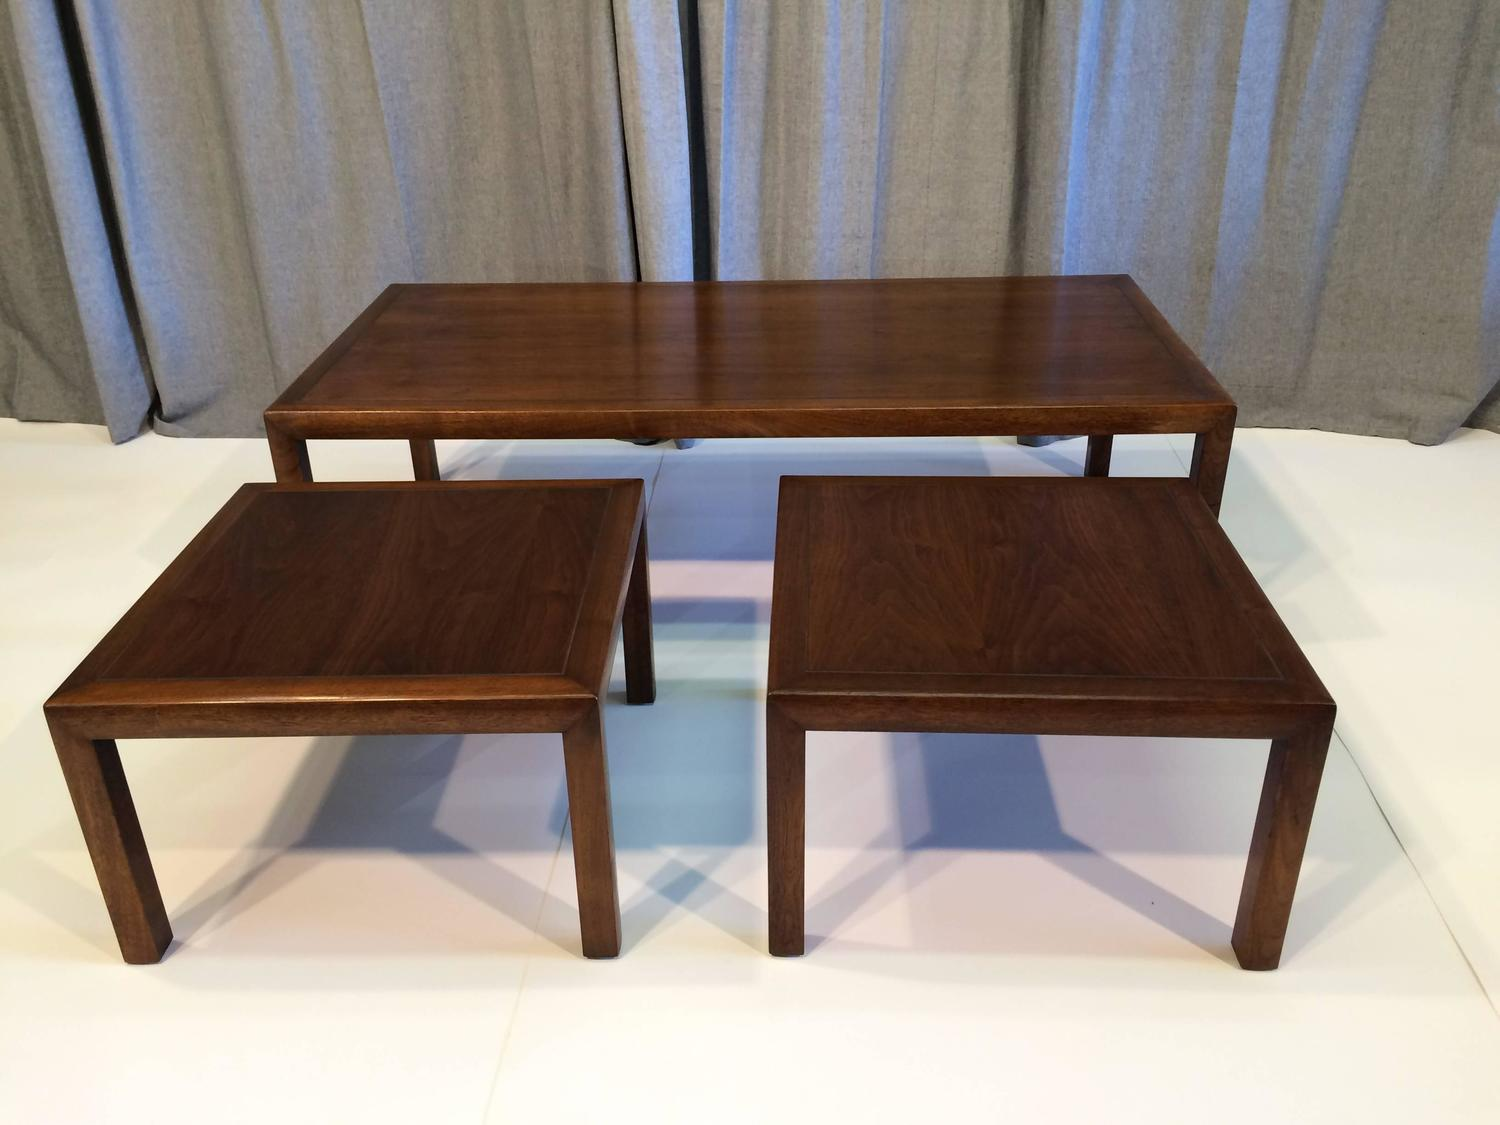 Knoll Style Coffee Table With Matching Side Tables For Sale At 1stdibs